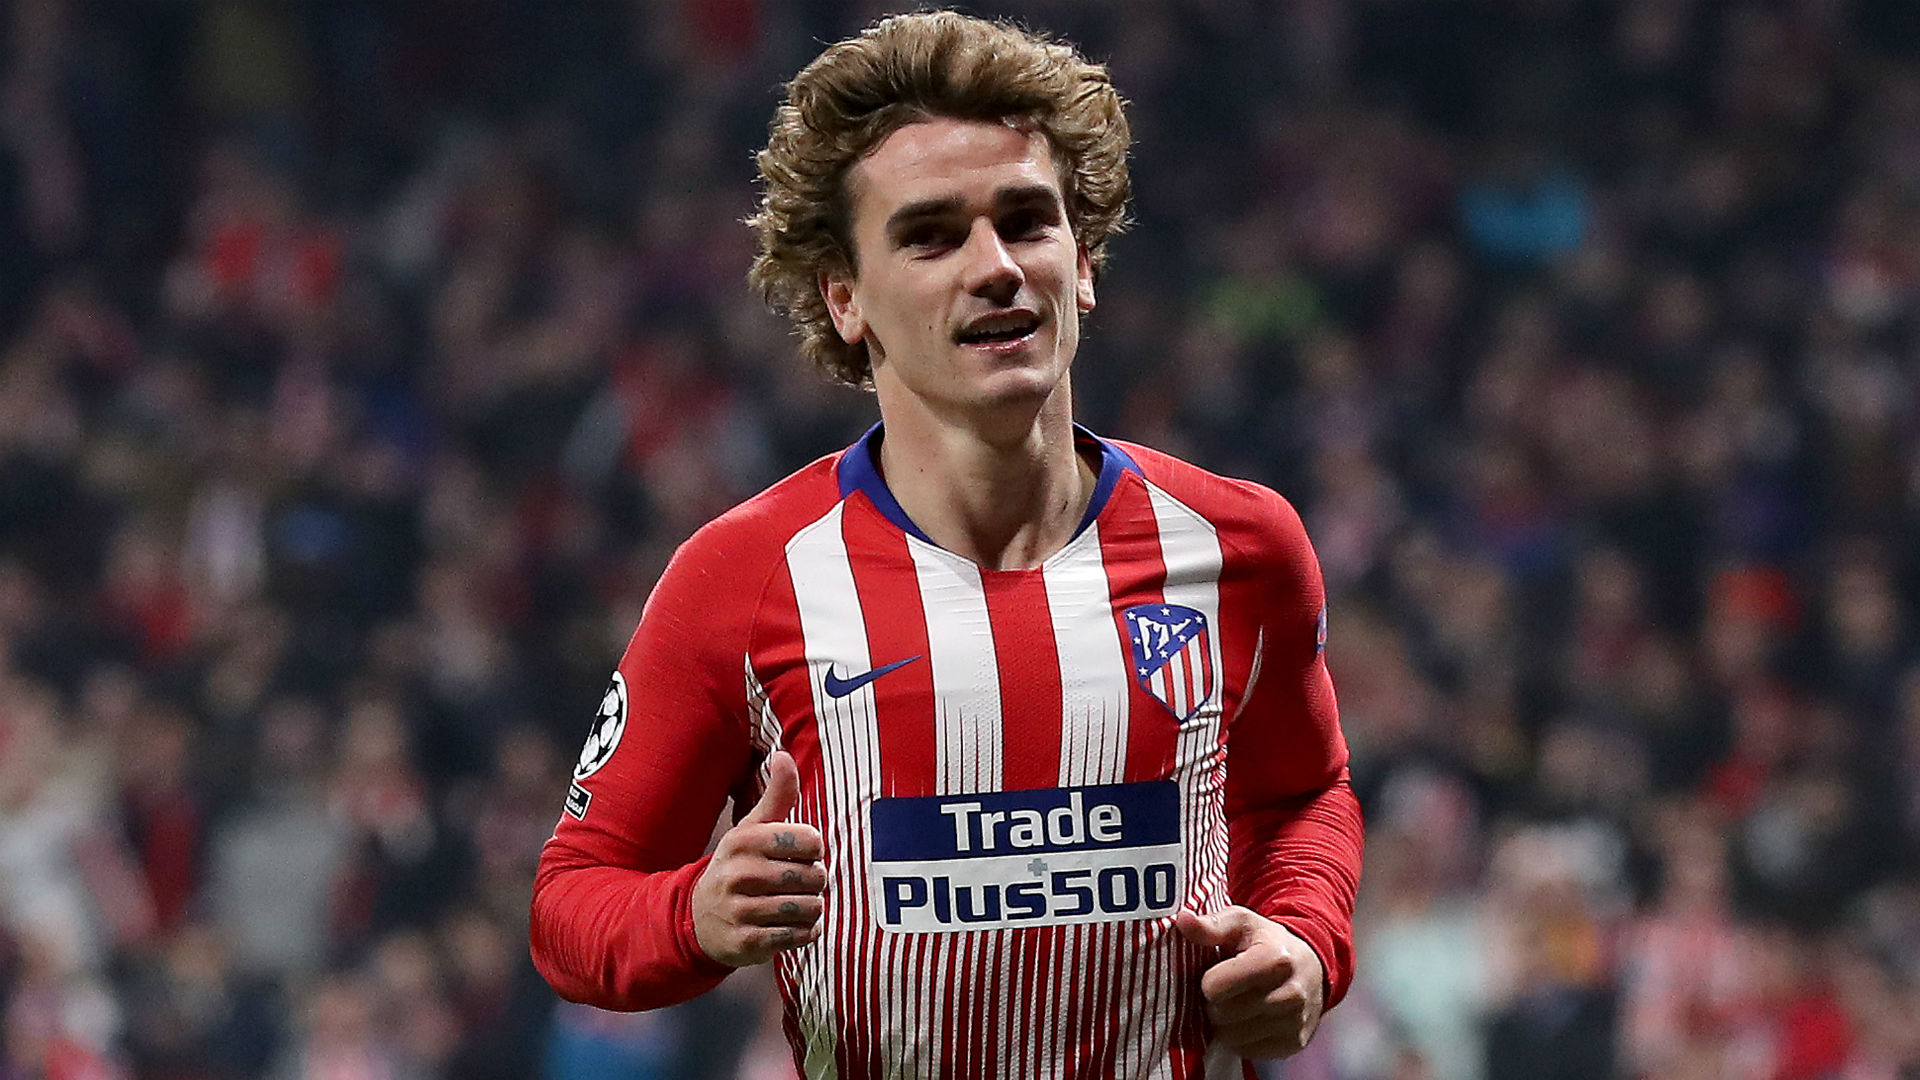 He's happy in Madrid – Umtiti not expecting Griezmann reunion at Barcelona